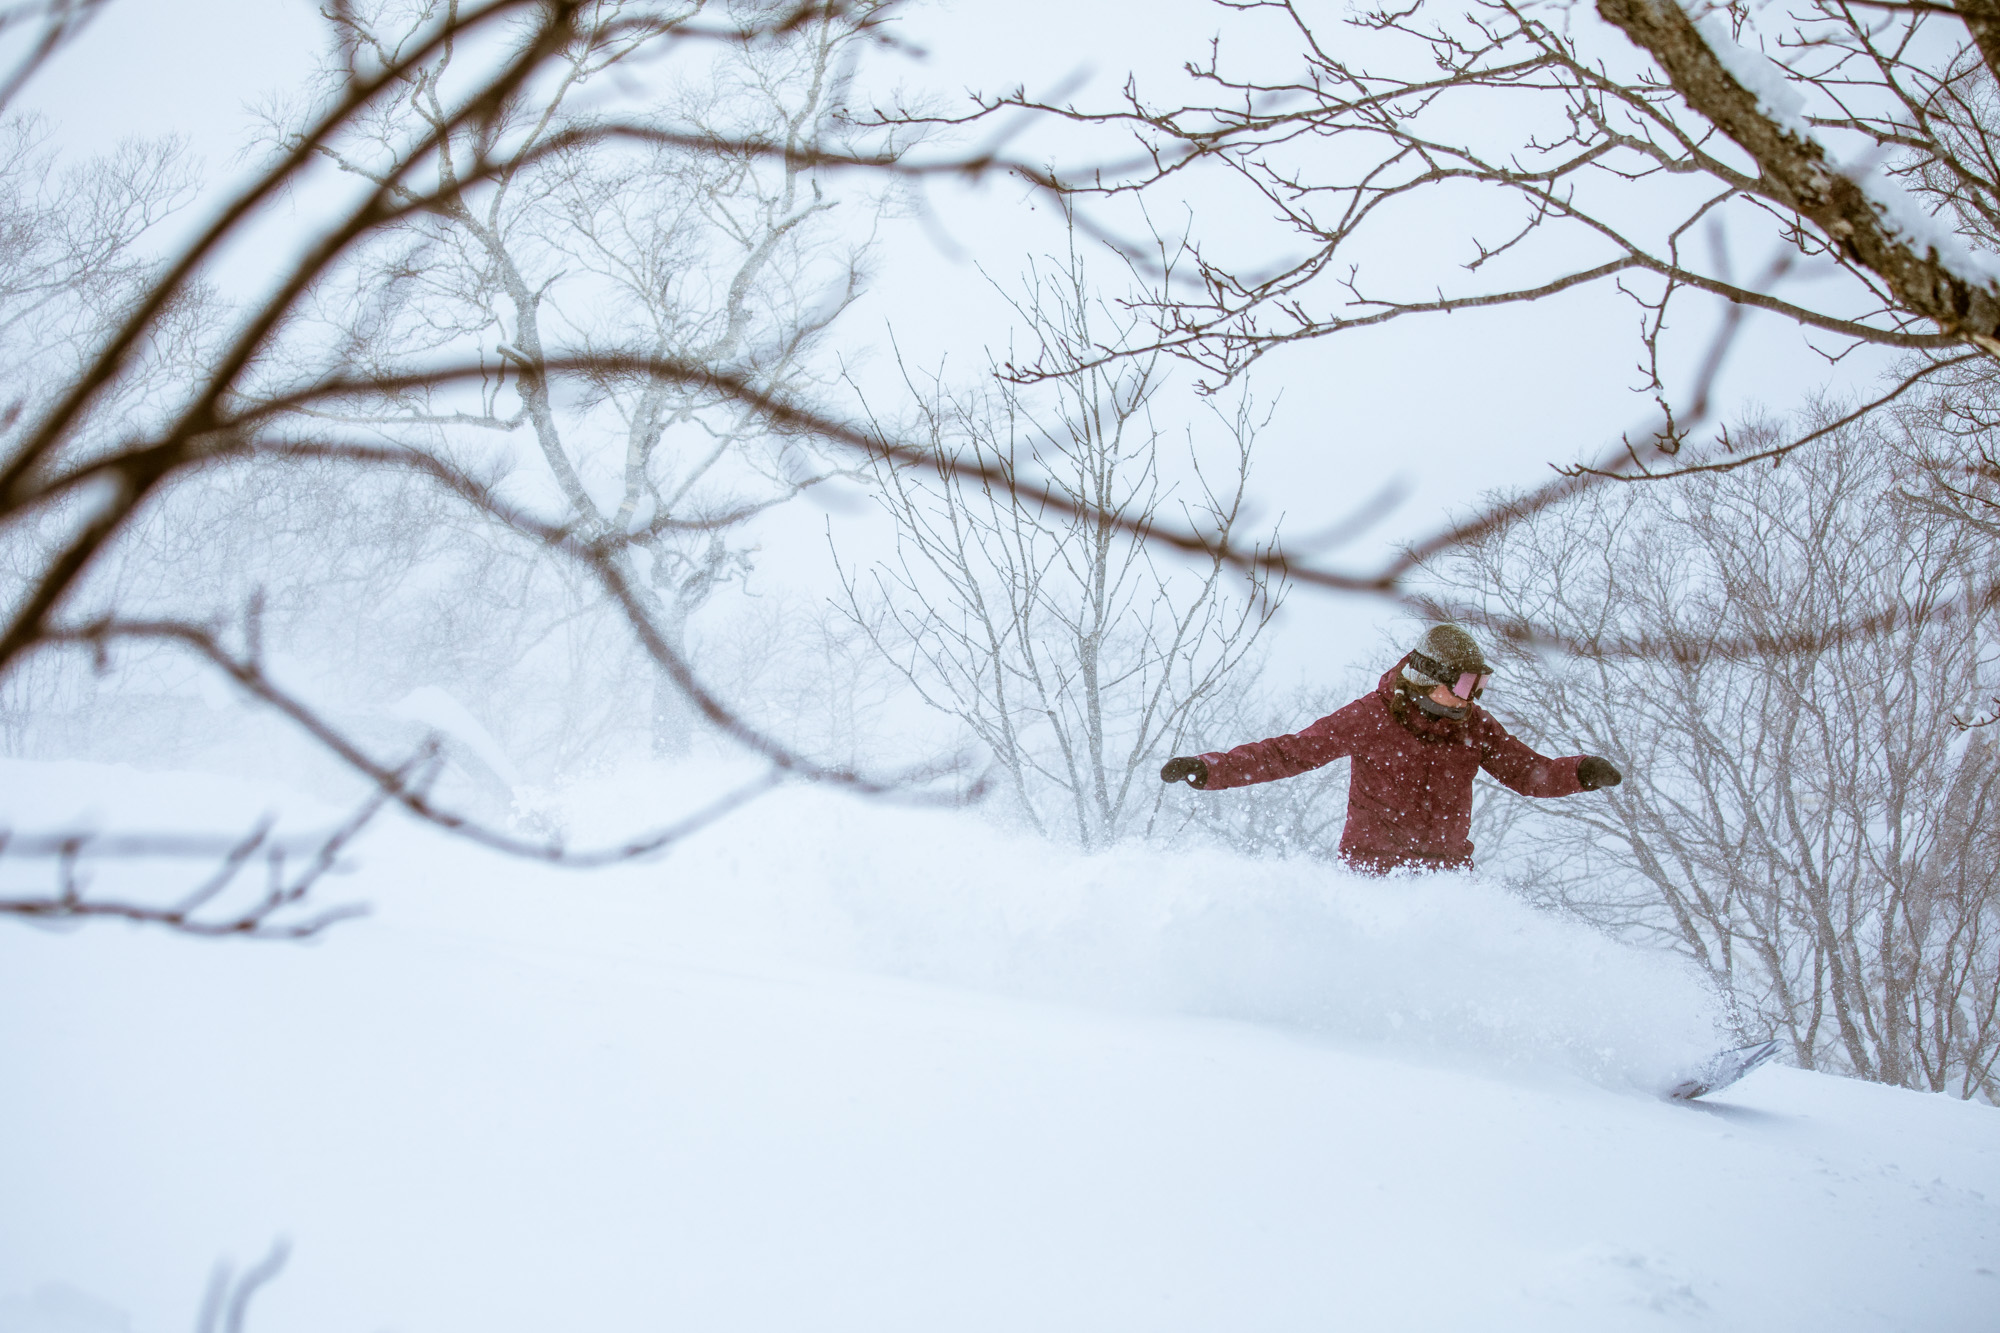 Japan-Niseko-Hirafu-day1-ChristineSavage-Jan18-walsh-3.jpg